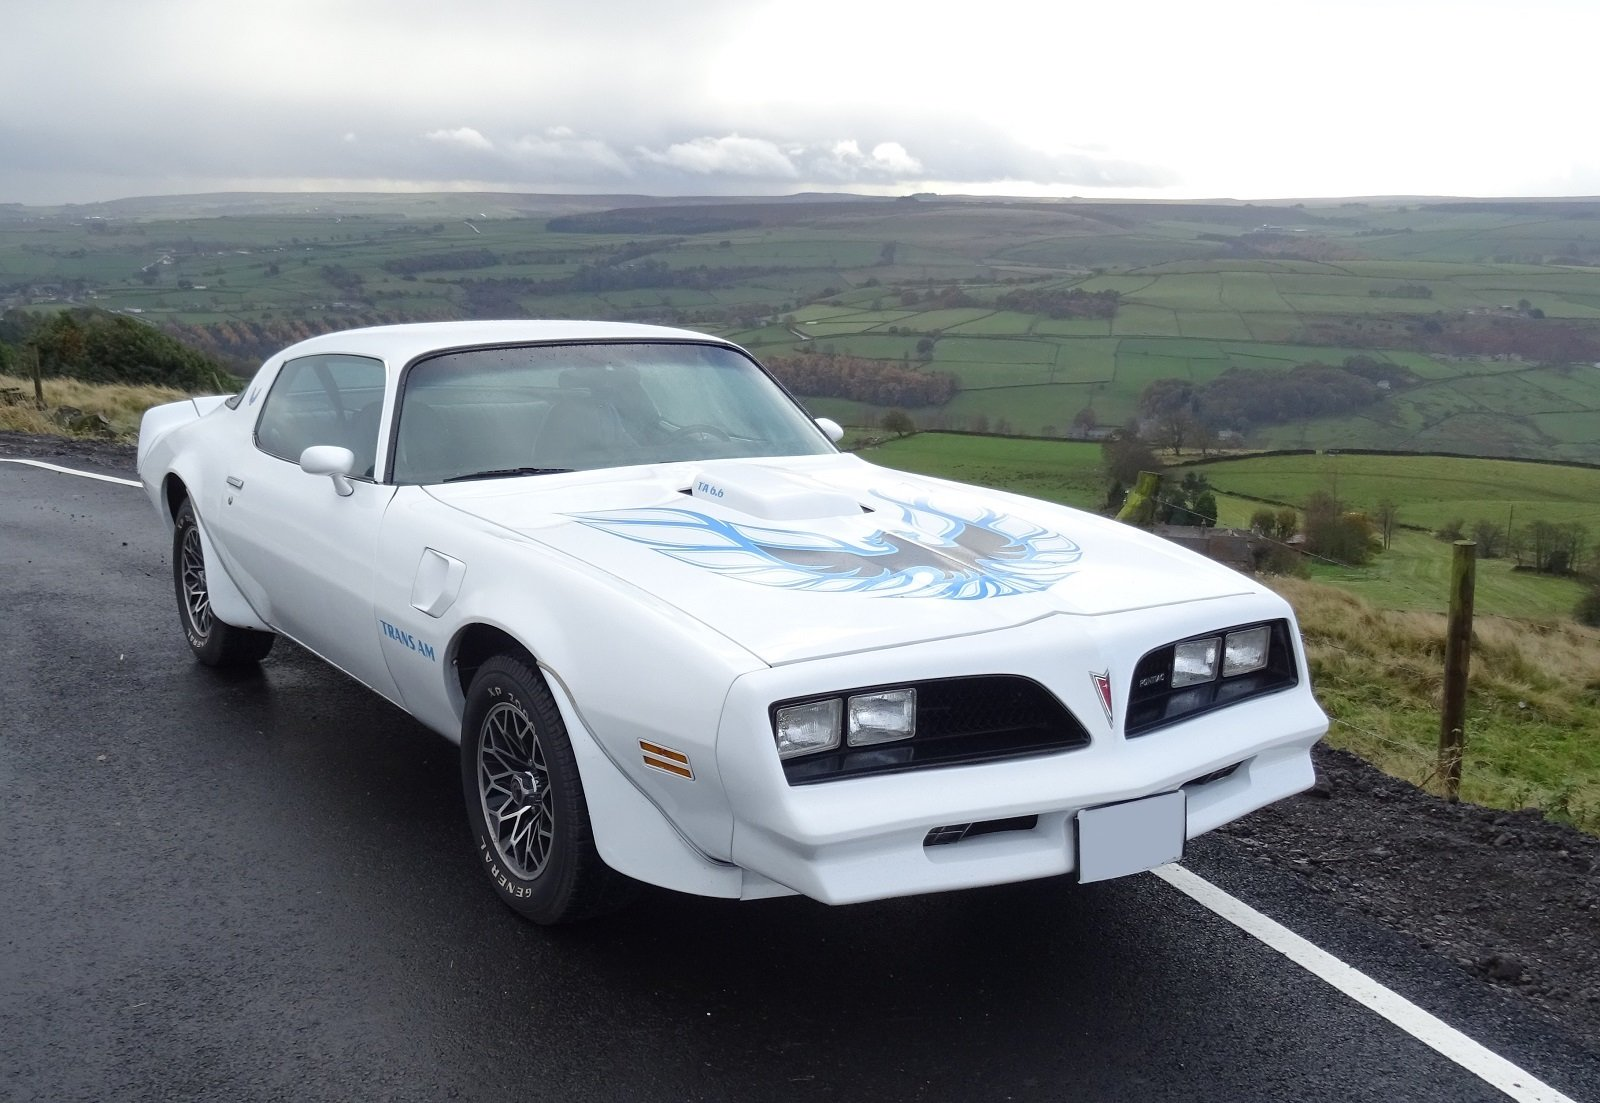 1978 STUNNING FIREBIRD TRANS AM 6.6 V8 POWERFUL ENGINE MUSCLE CAR For Sale (picture 1 of 6)